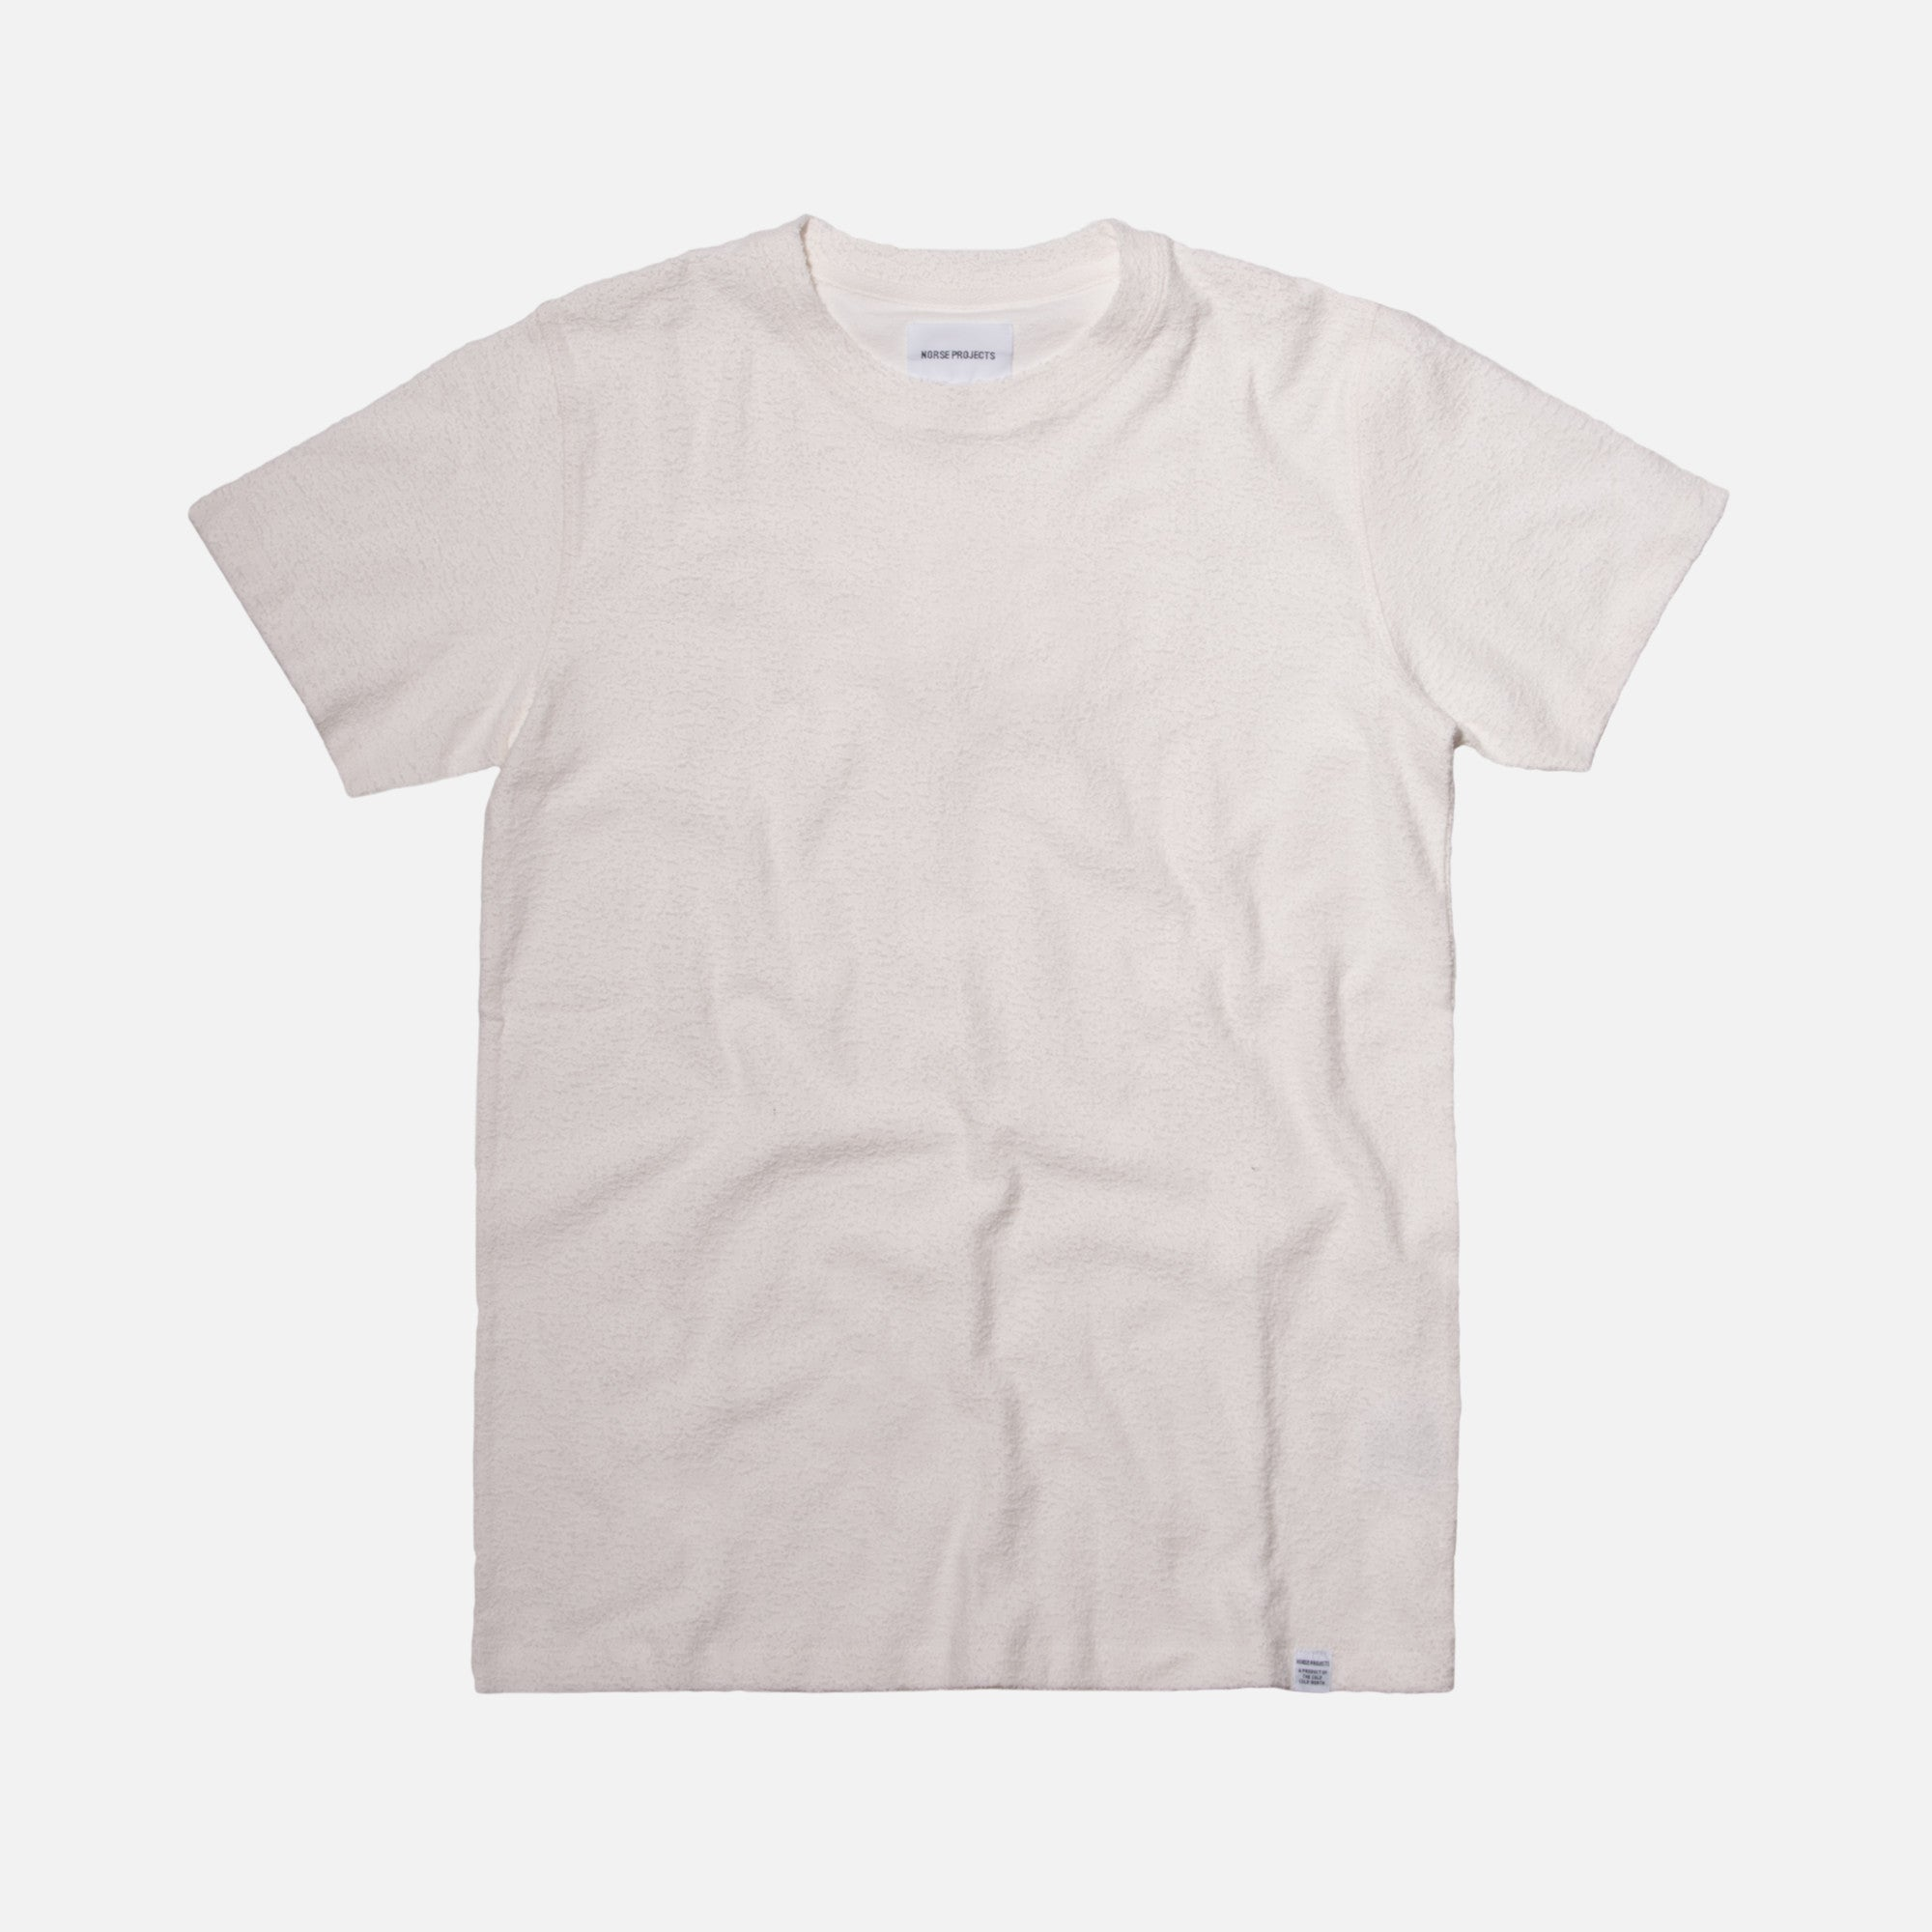 Norse Projects Niels Towelling Tee - Lucid White